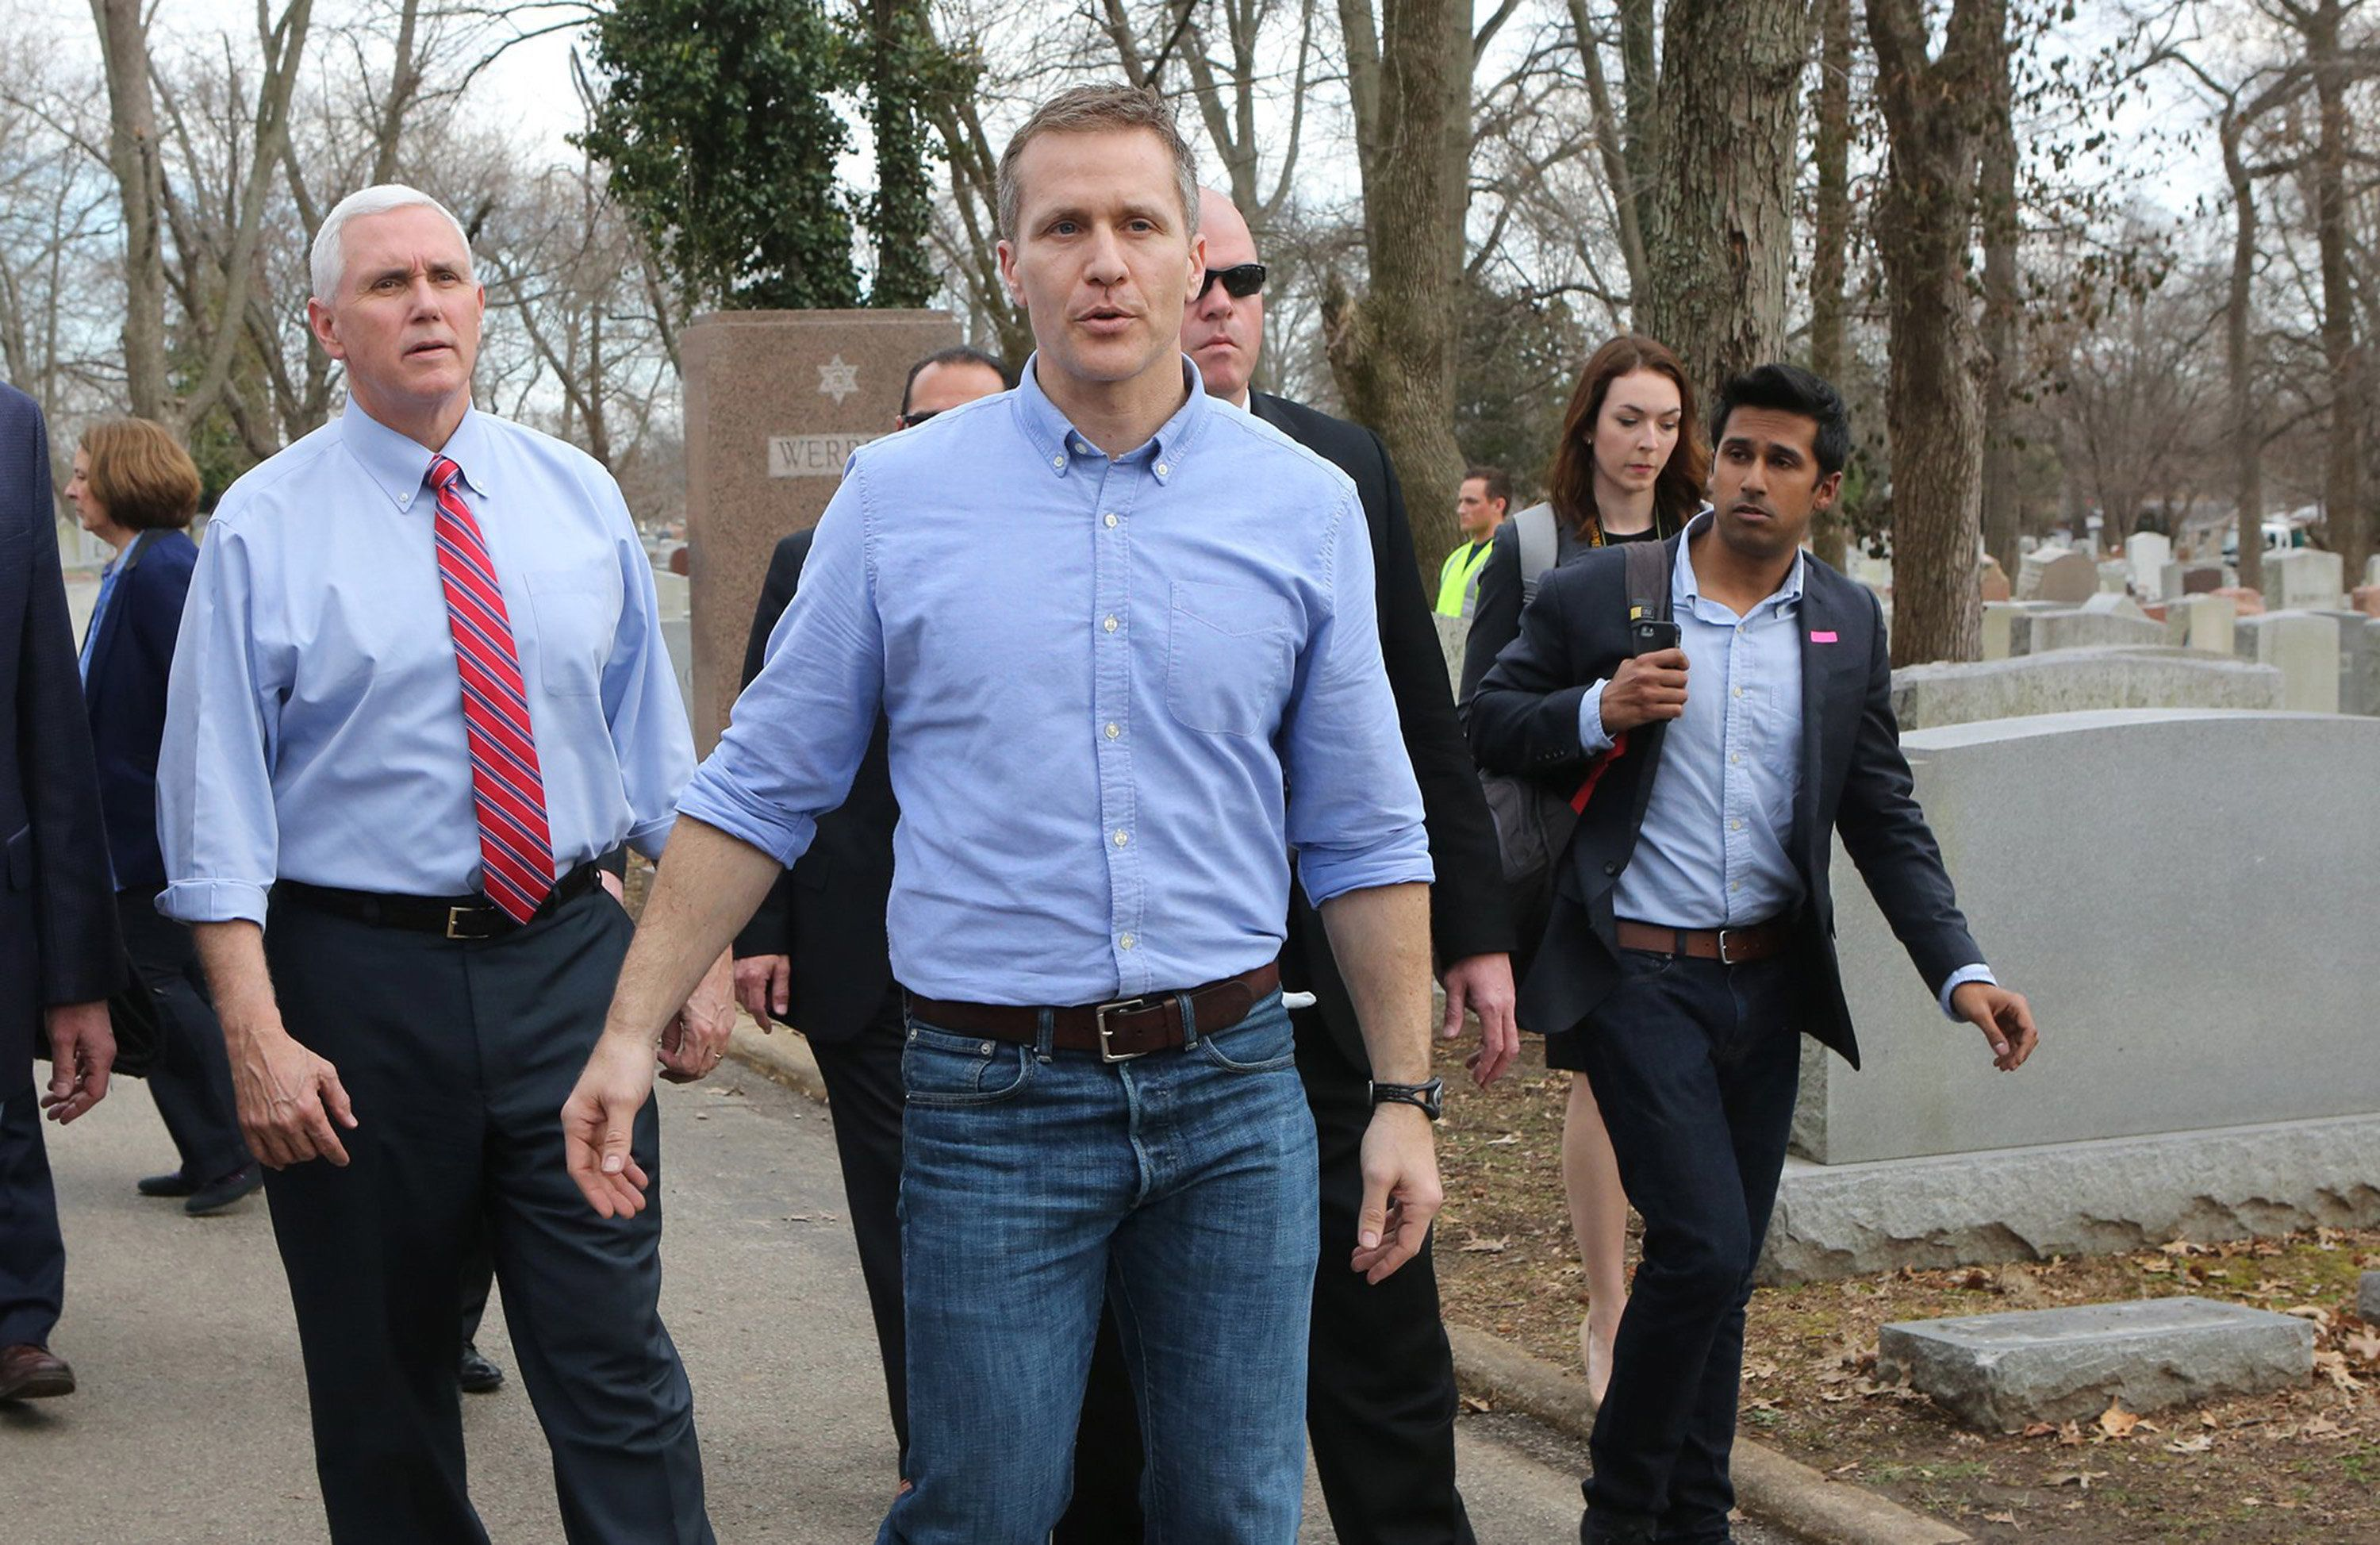 Vice President Mike Pence and Missouri Gov. Eric Greitens walk through the Chesed Shel Emeth Cemetery in University City, Mo., on Wednesday, Feb. 22, 2017. A St. Louis County attorney filed a lawsuit last week accusing Gov. Eric Greitens and his staff of engaging in an ongoing conspiracy to violate Missouri's open records laws by using an app that deletes text messages after they've been read. (J.B. Forbes/St. Louis Post-Dispatch/TNS via Getty Images)